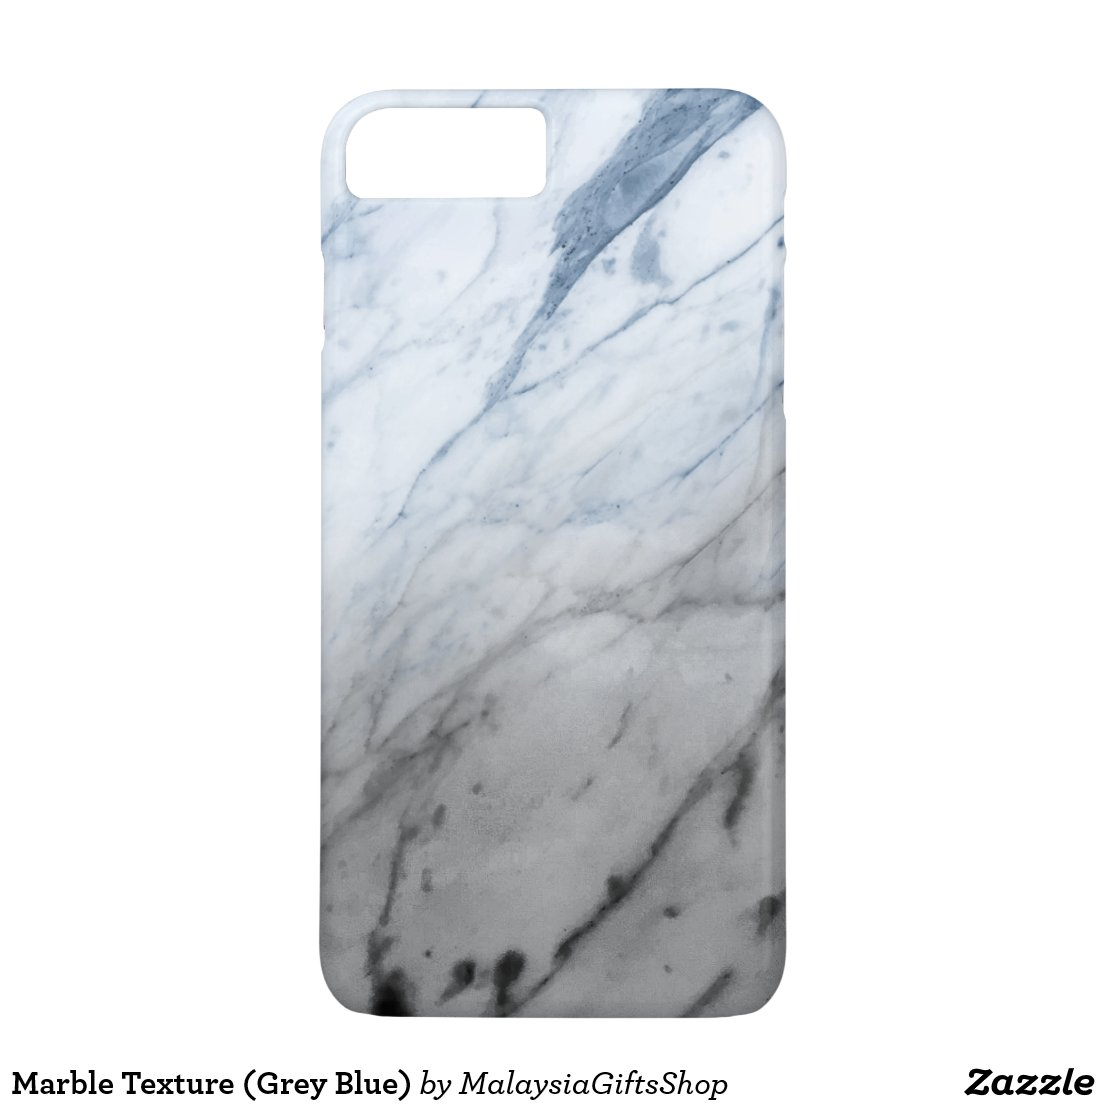 Marble Texture (Grey Blue) iPhone 7 Plus Case